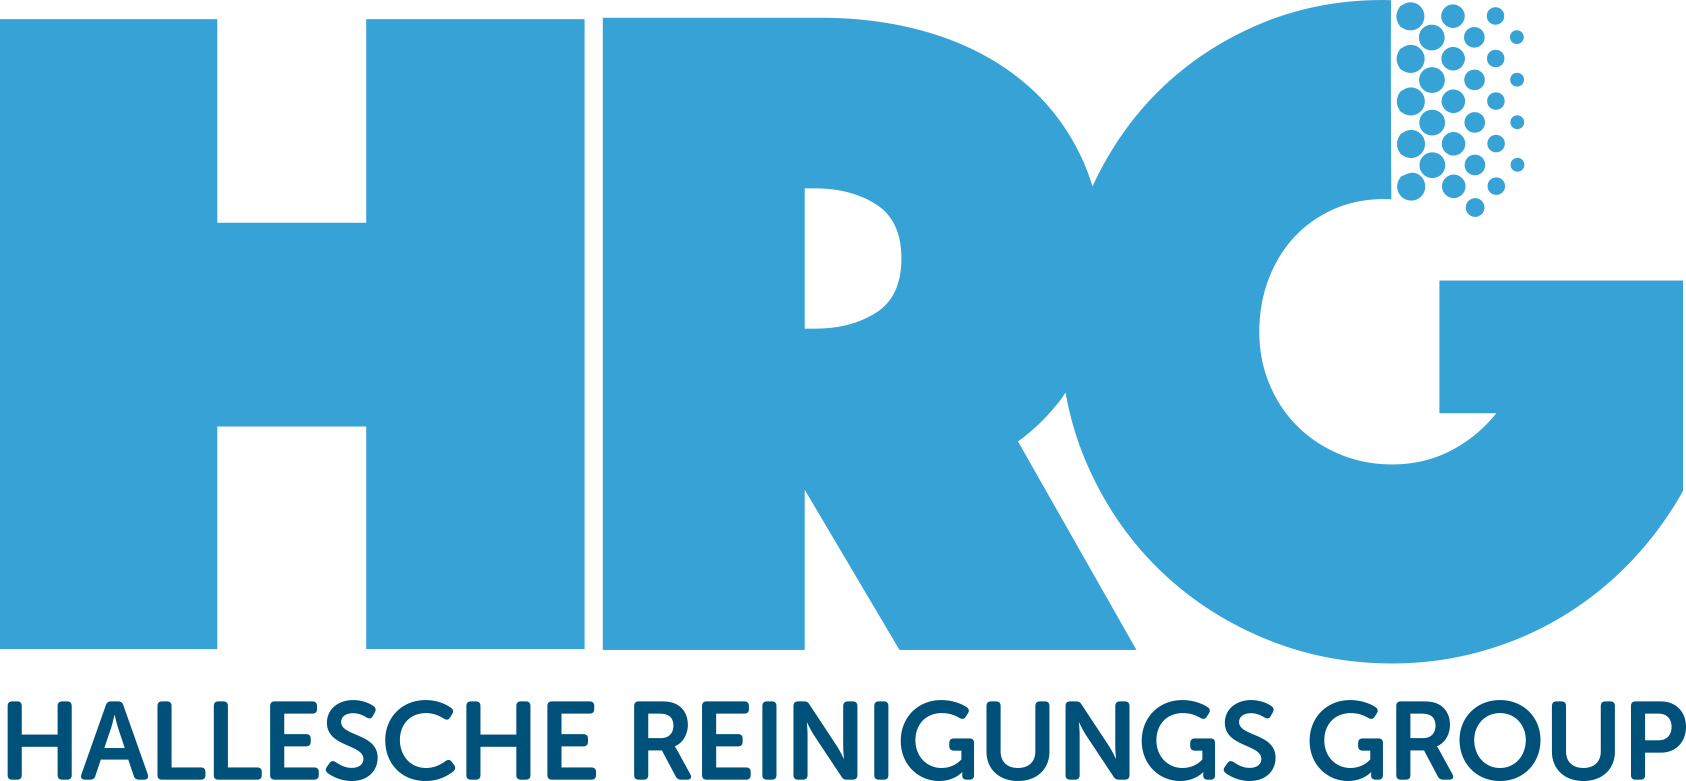 HRG Hallesche Reinigungs Group UG